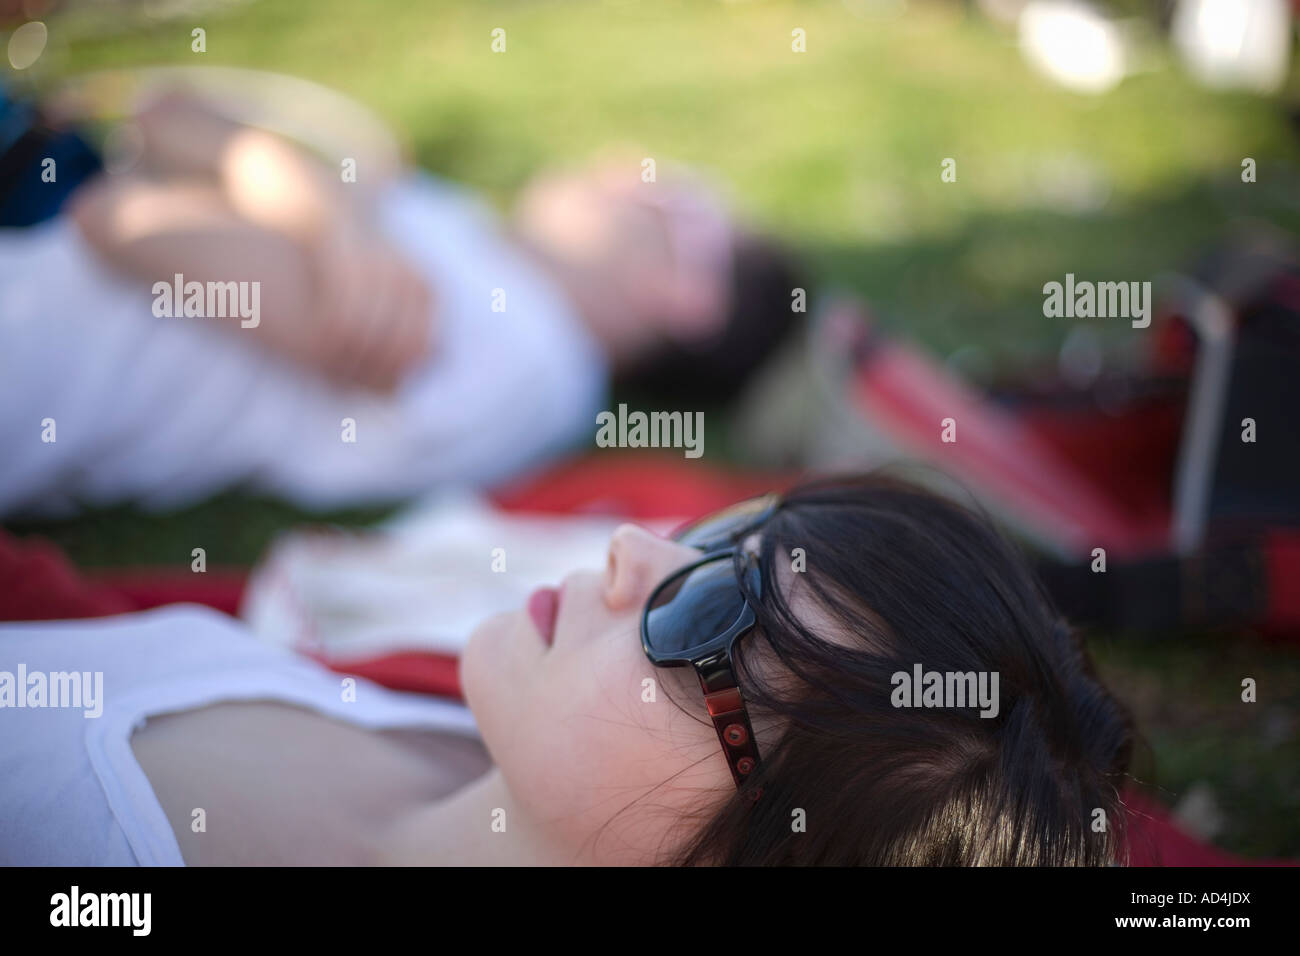 A young woman lying down in a park - Stock Image